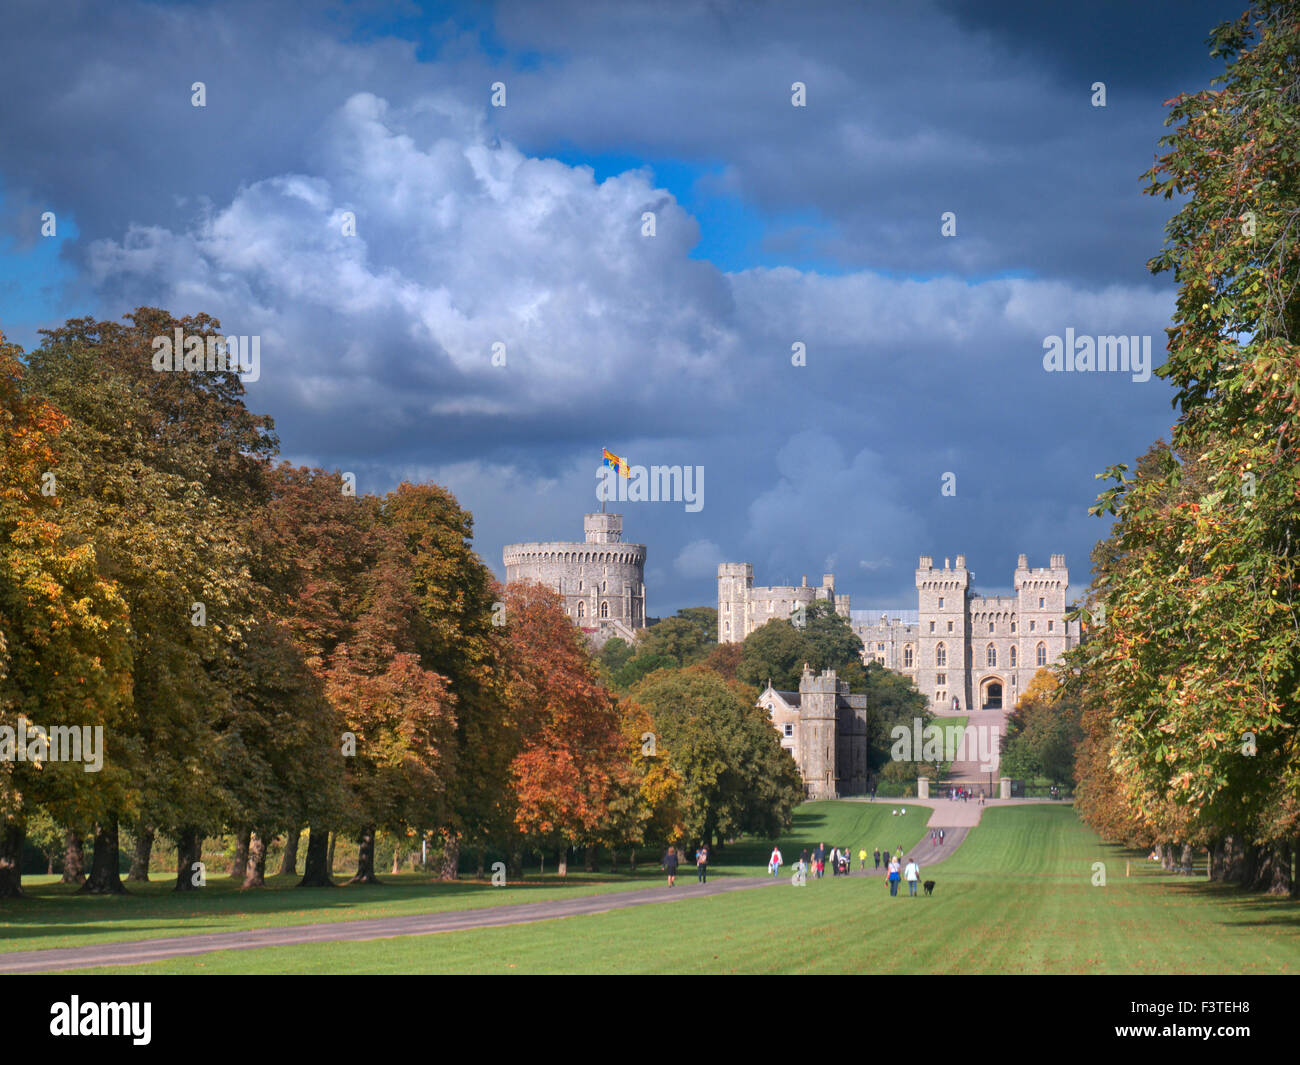 Windsor Castle flying Royal Standard viewed down the Long Walk with walkers, in autumnal colour with dramatic sky - Stock Image